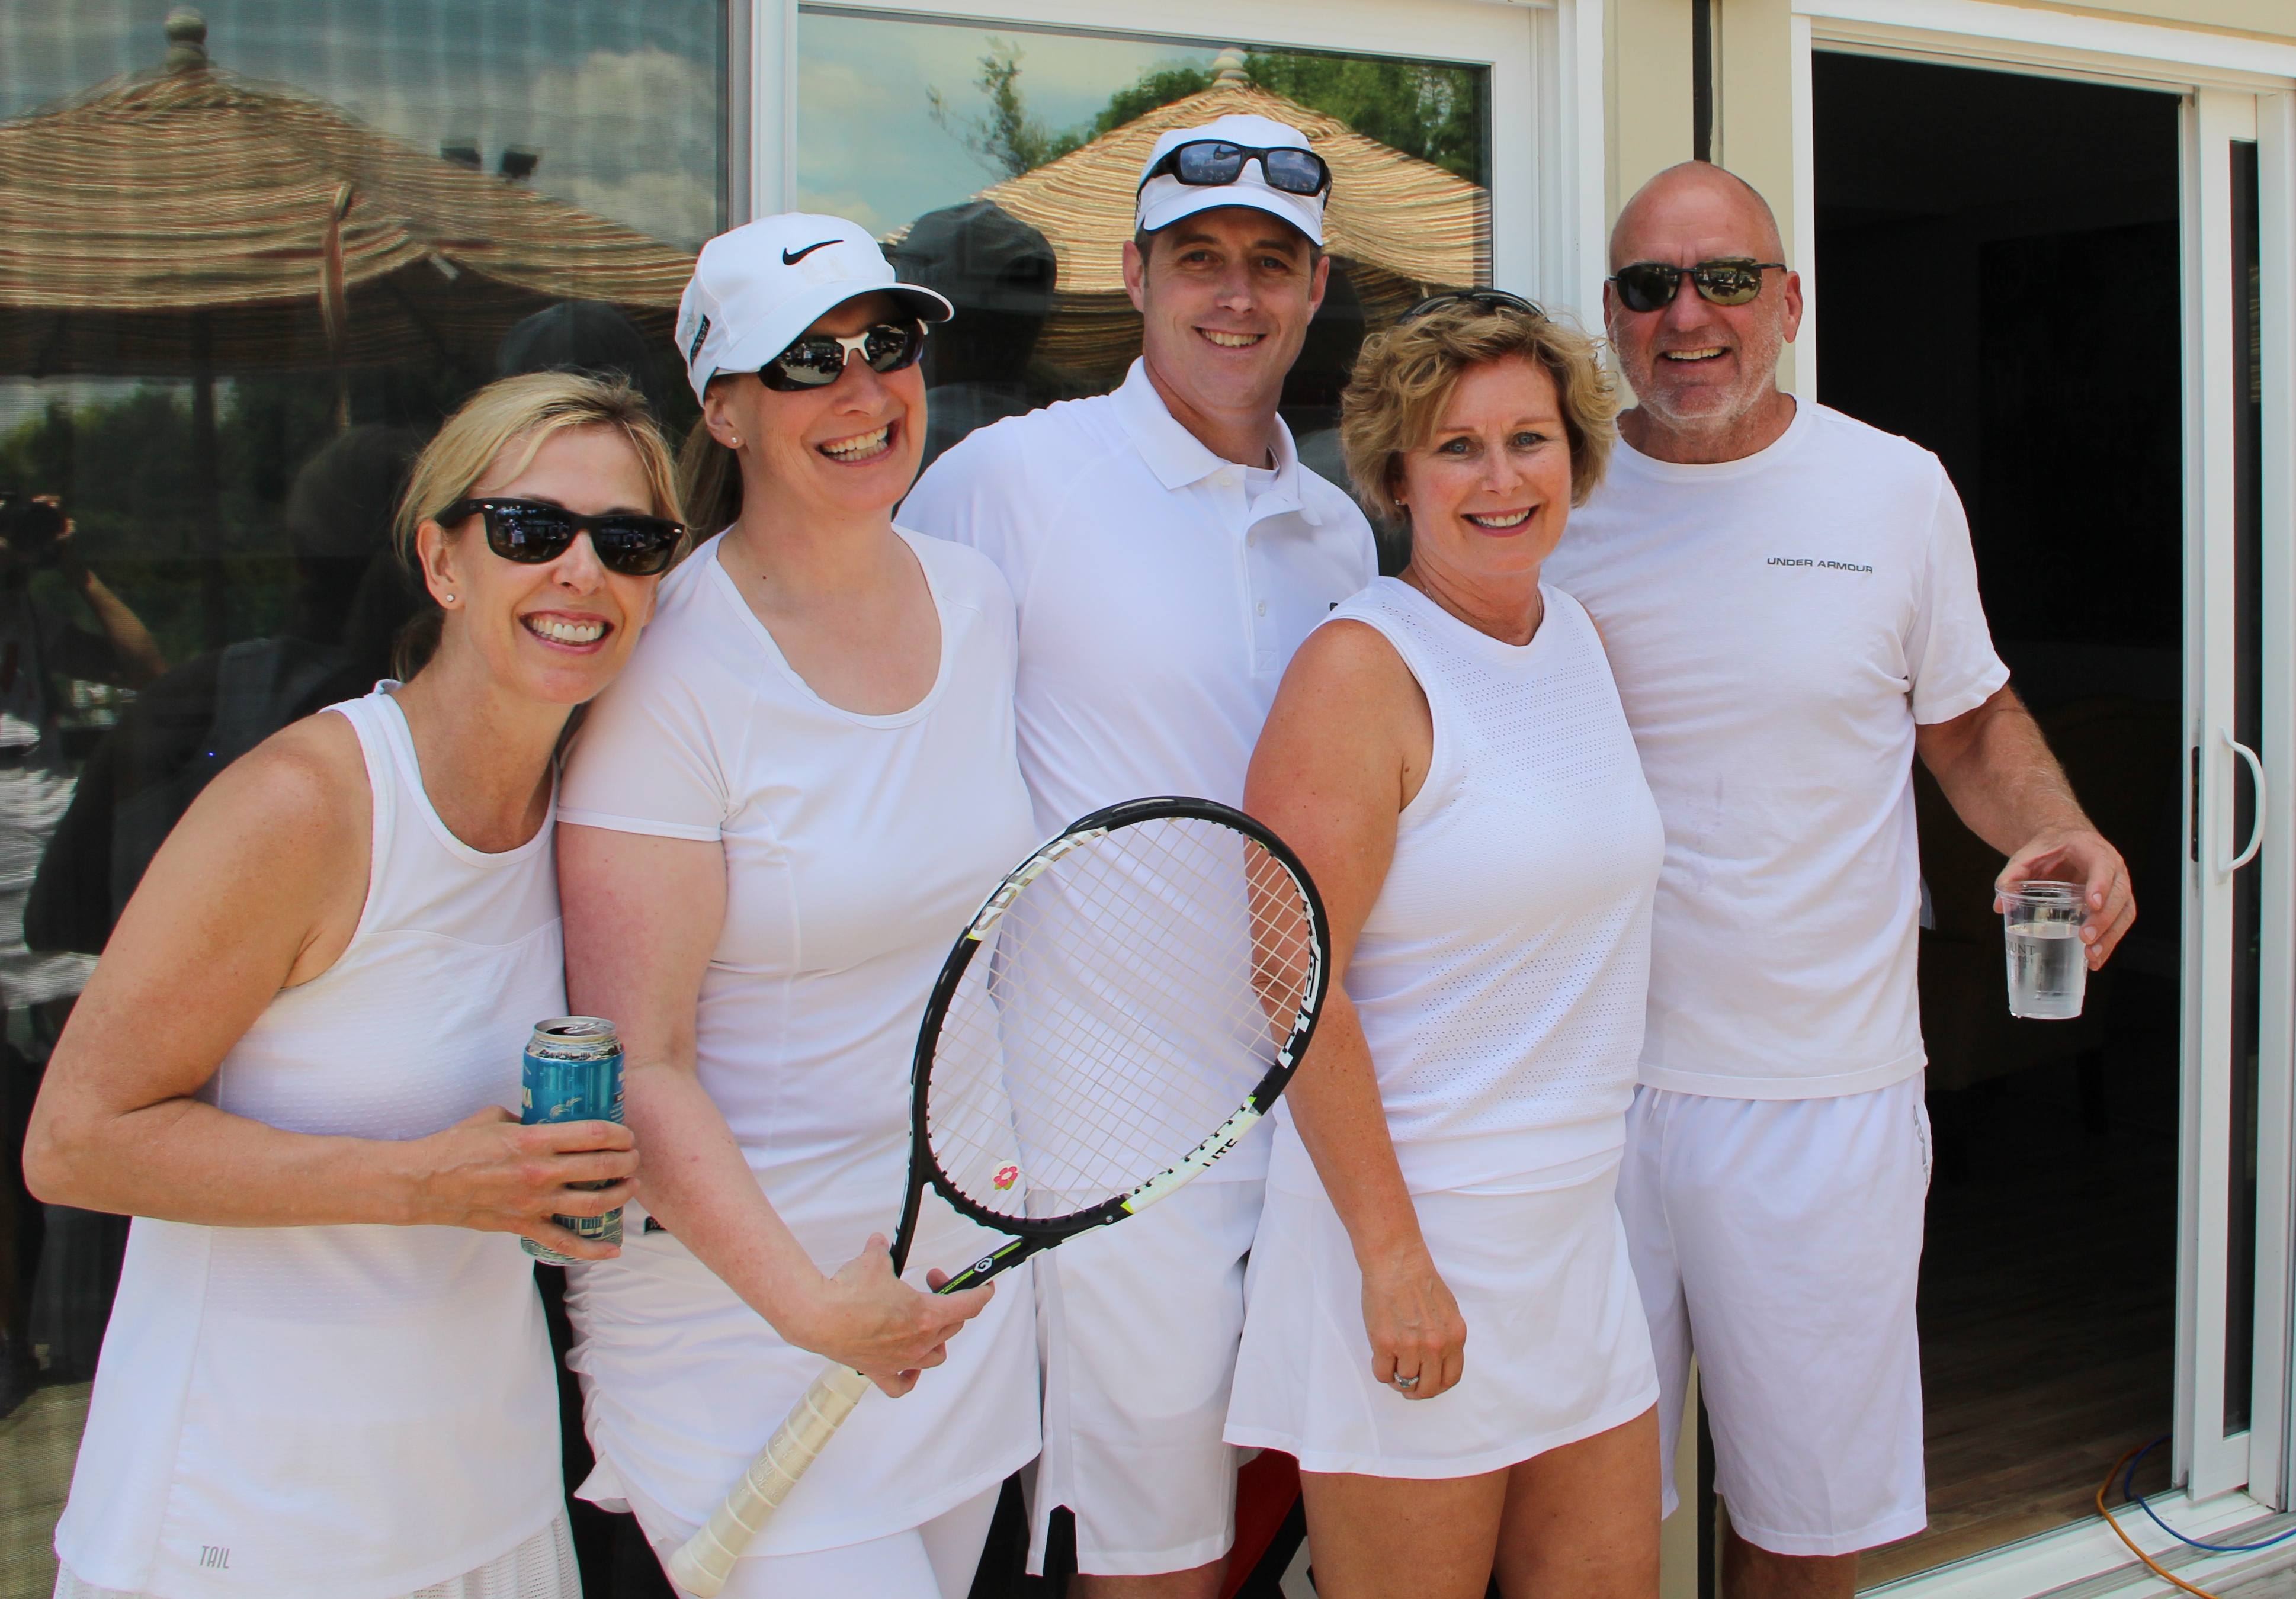 Westmount Annual Tradition Charity Doubles Tennis Tournament Supports Carizon!